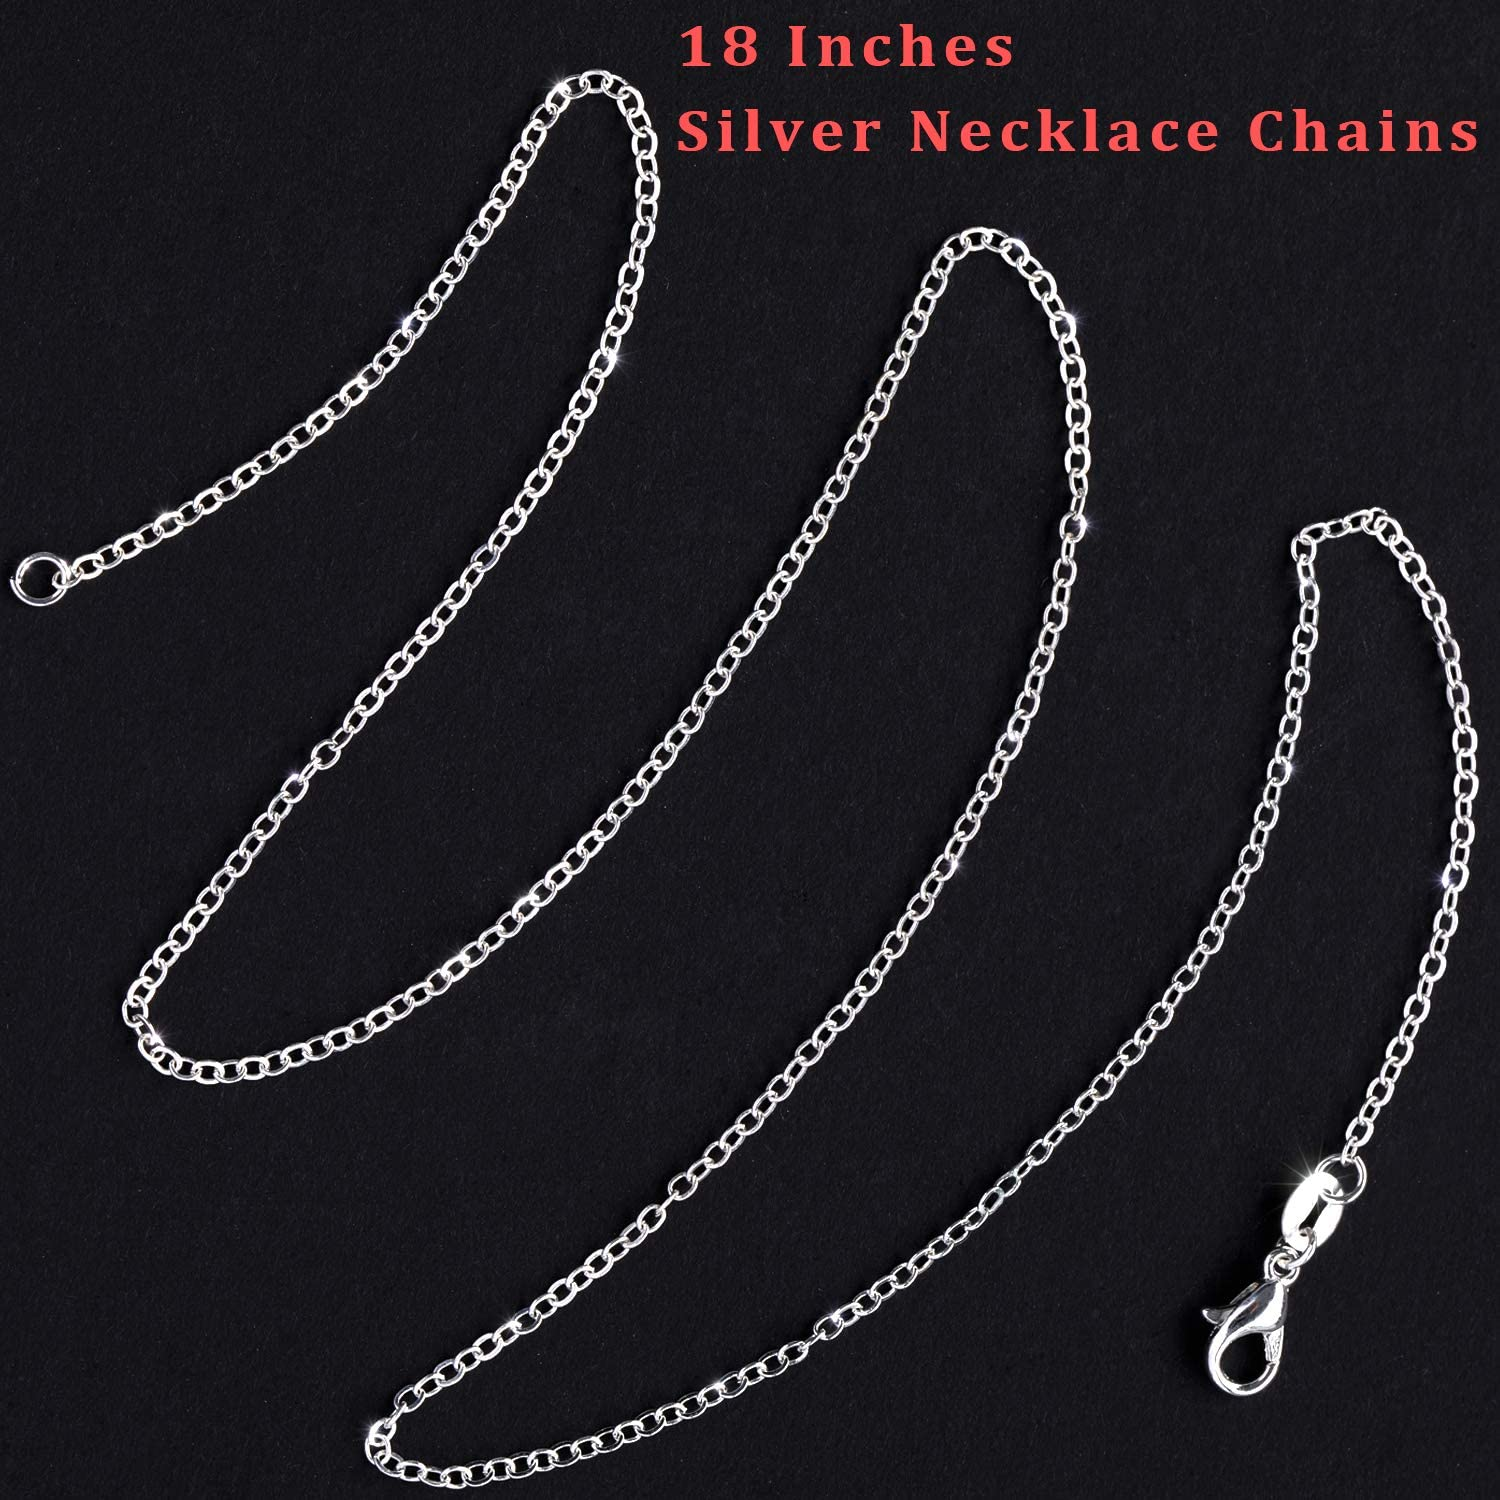 50 Pack Silver Plated Necklace Chains Bulk Cable Chain Pack for Jewelry Making 18 Inches